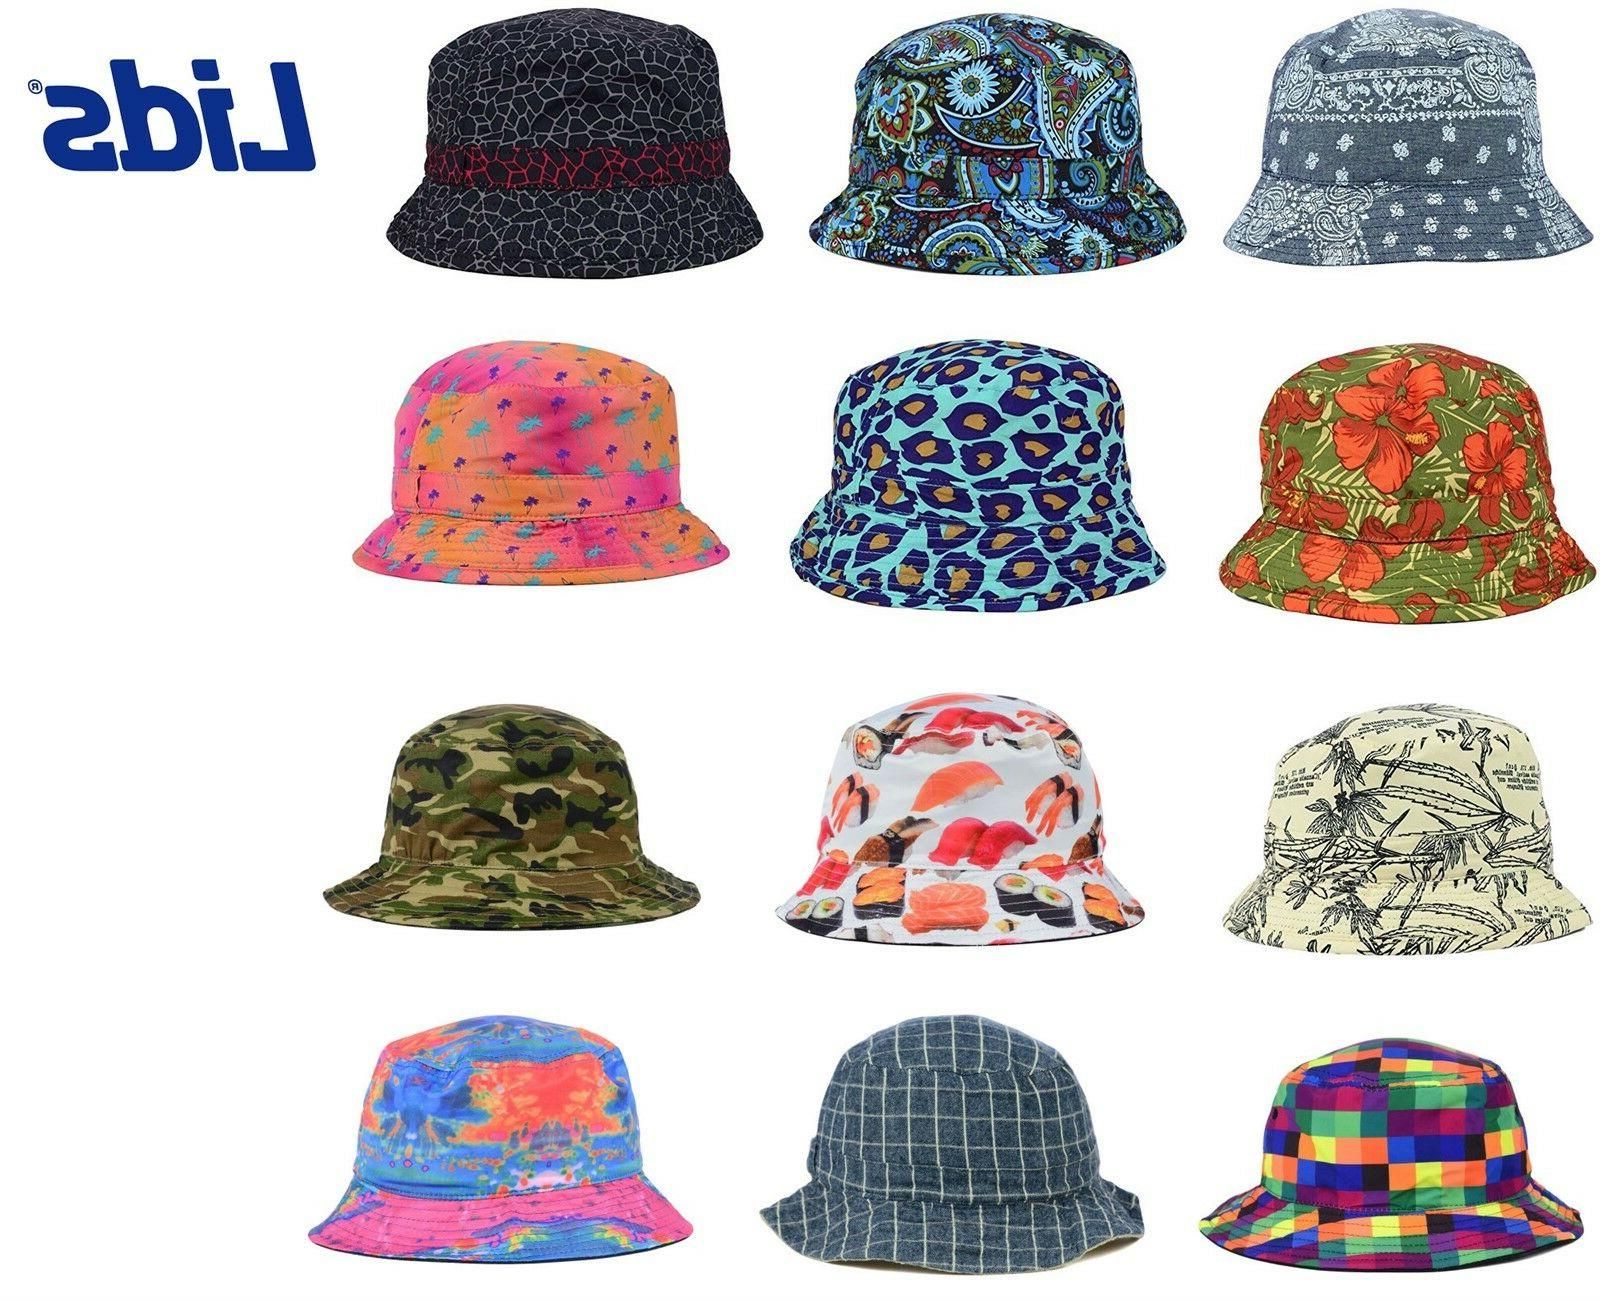 0e6e76350e0 LIDS Reversible Printed Bucket Hat - MANY STYLES - ALL SIZES